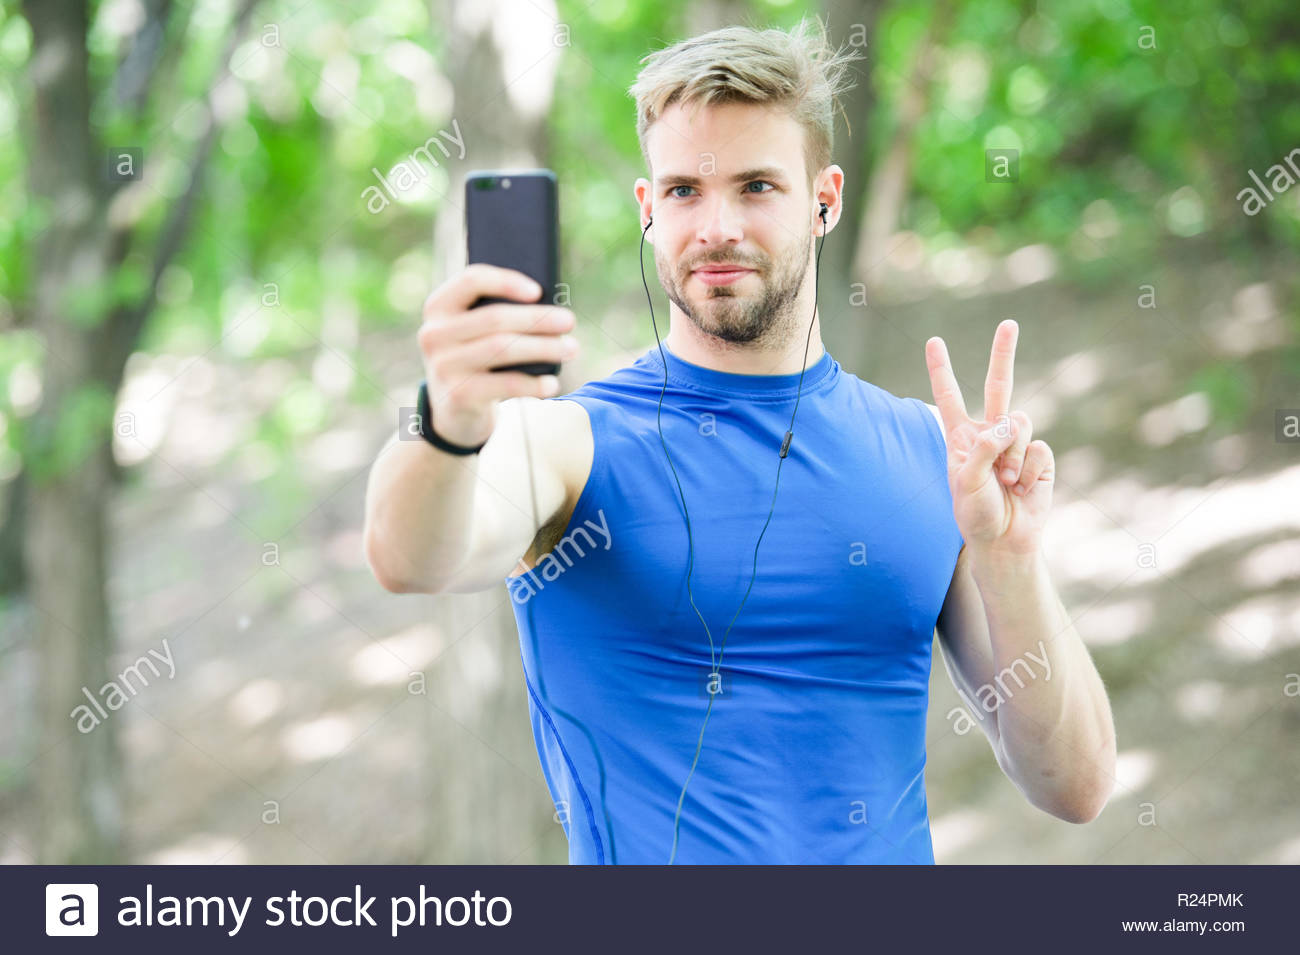 Man athlete concentrated face take smartphone photo nature 1300x955